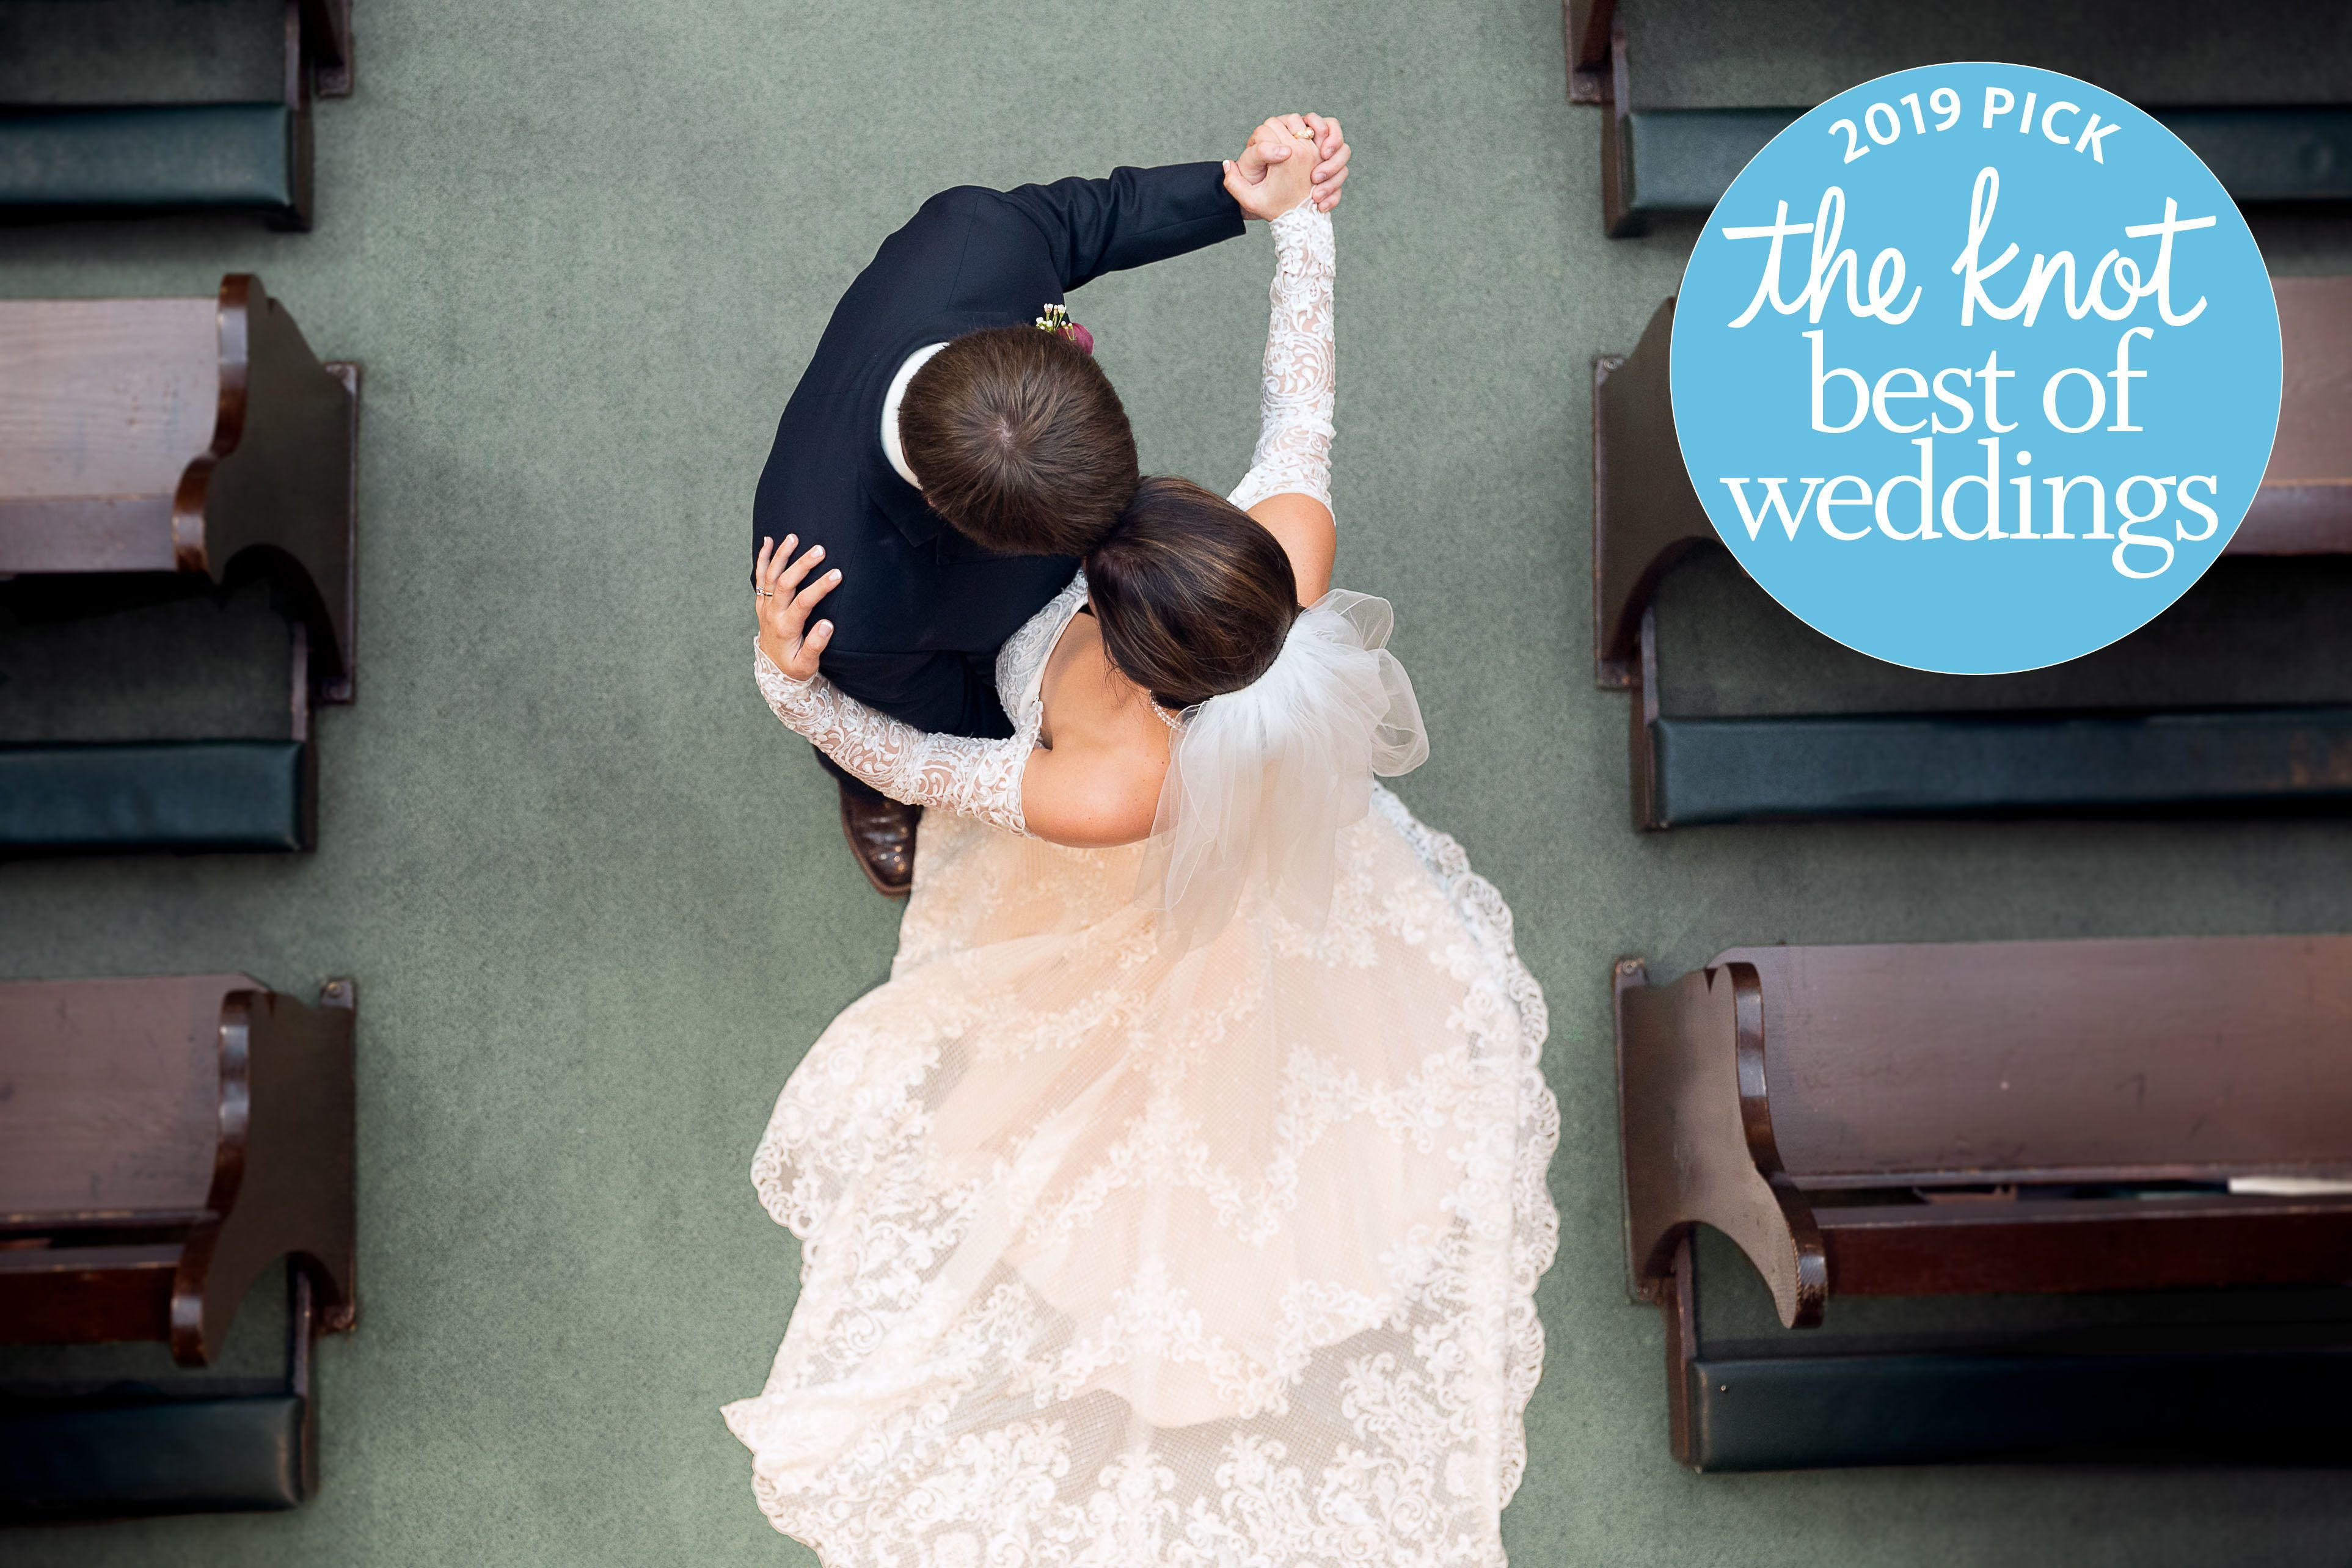 I found this great wedding vendor on The Knot! (With